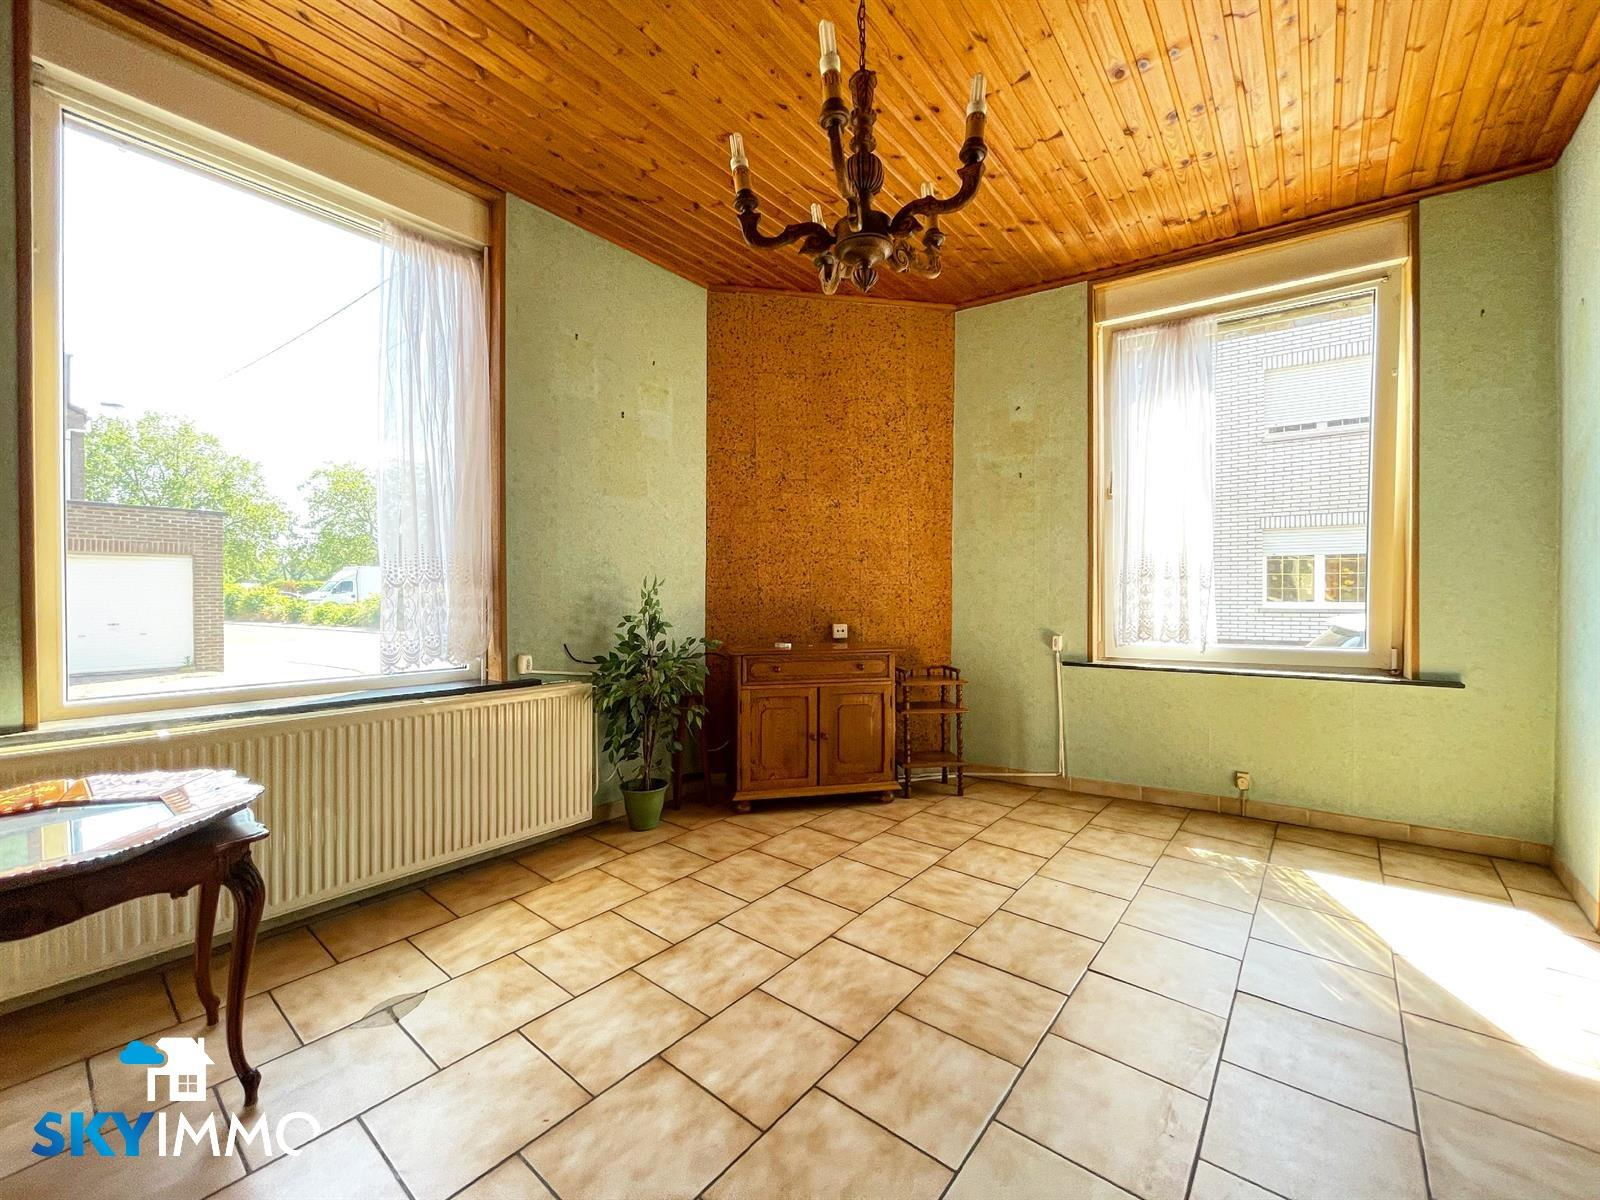 Huis - Flemalle - #4394734-4